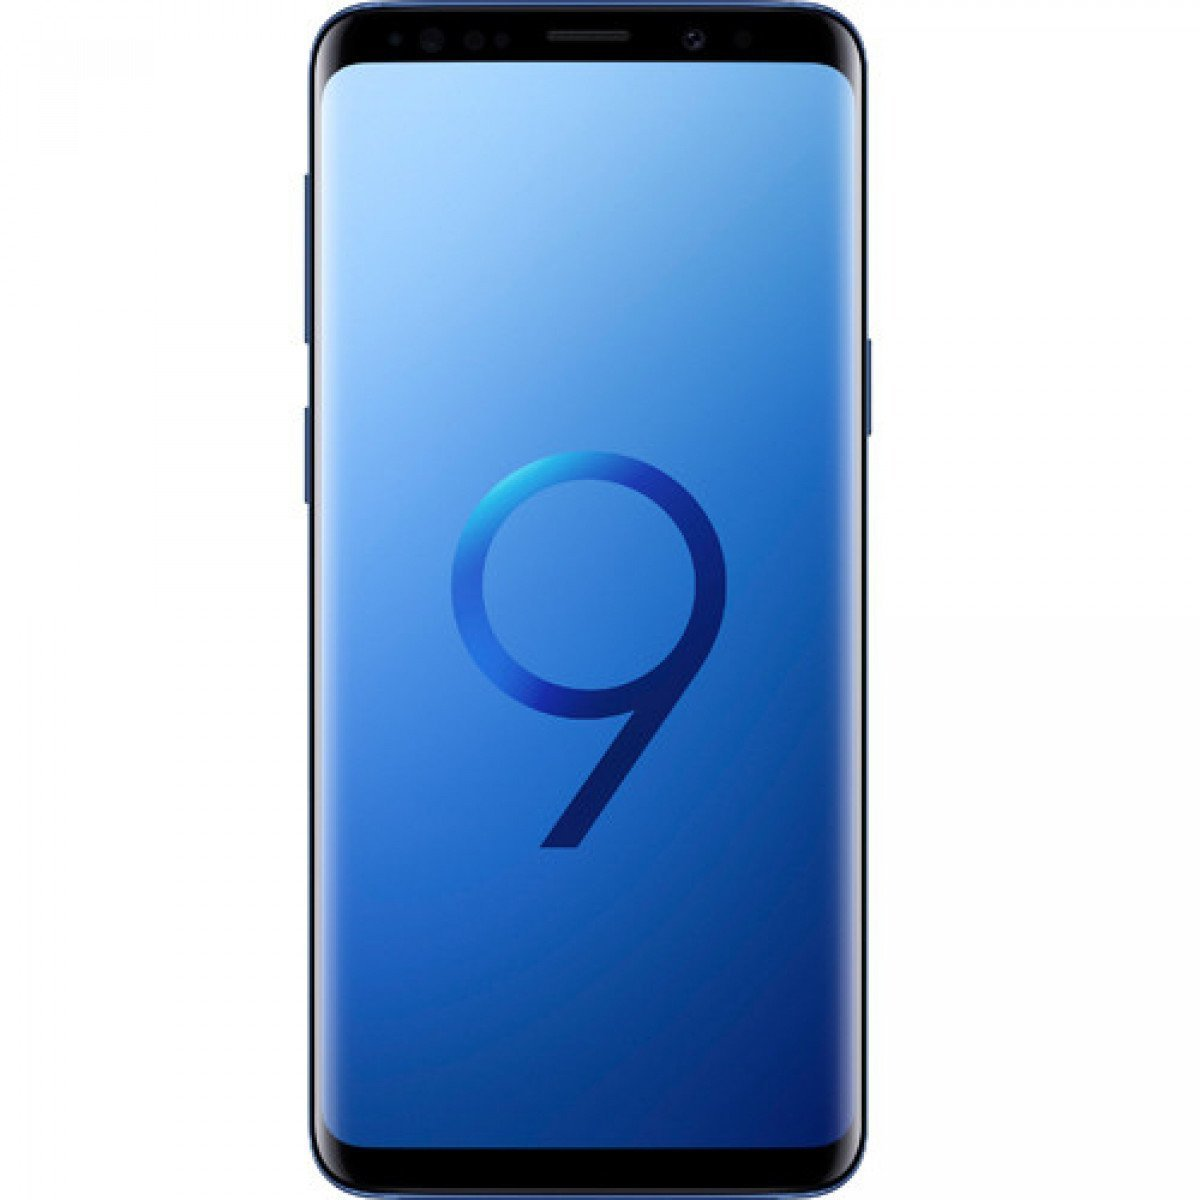 Samsung Galaxy S9 Plus Clone 6.2inch Android 8.1 Snapdragon 845 3.5GHZ 4G LTE 64GB